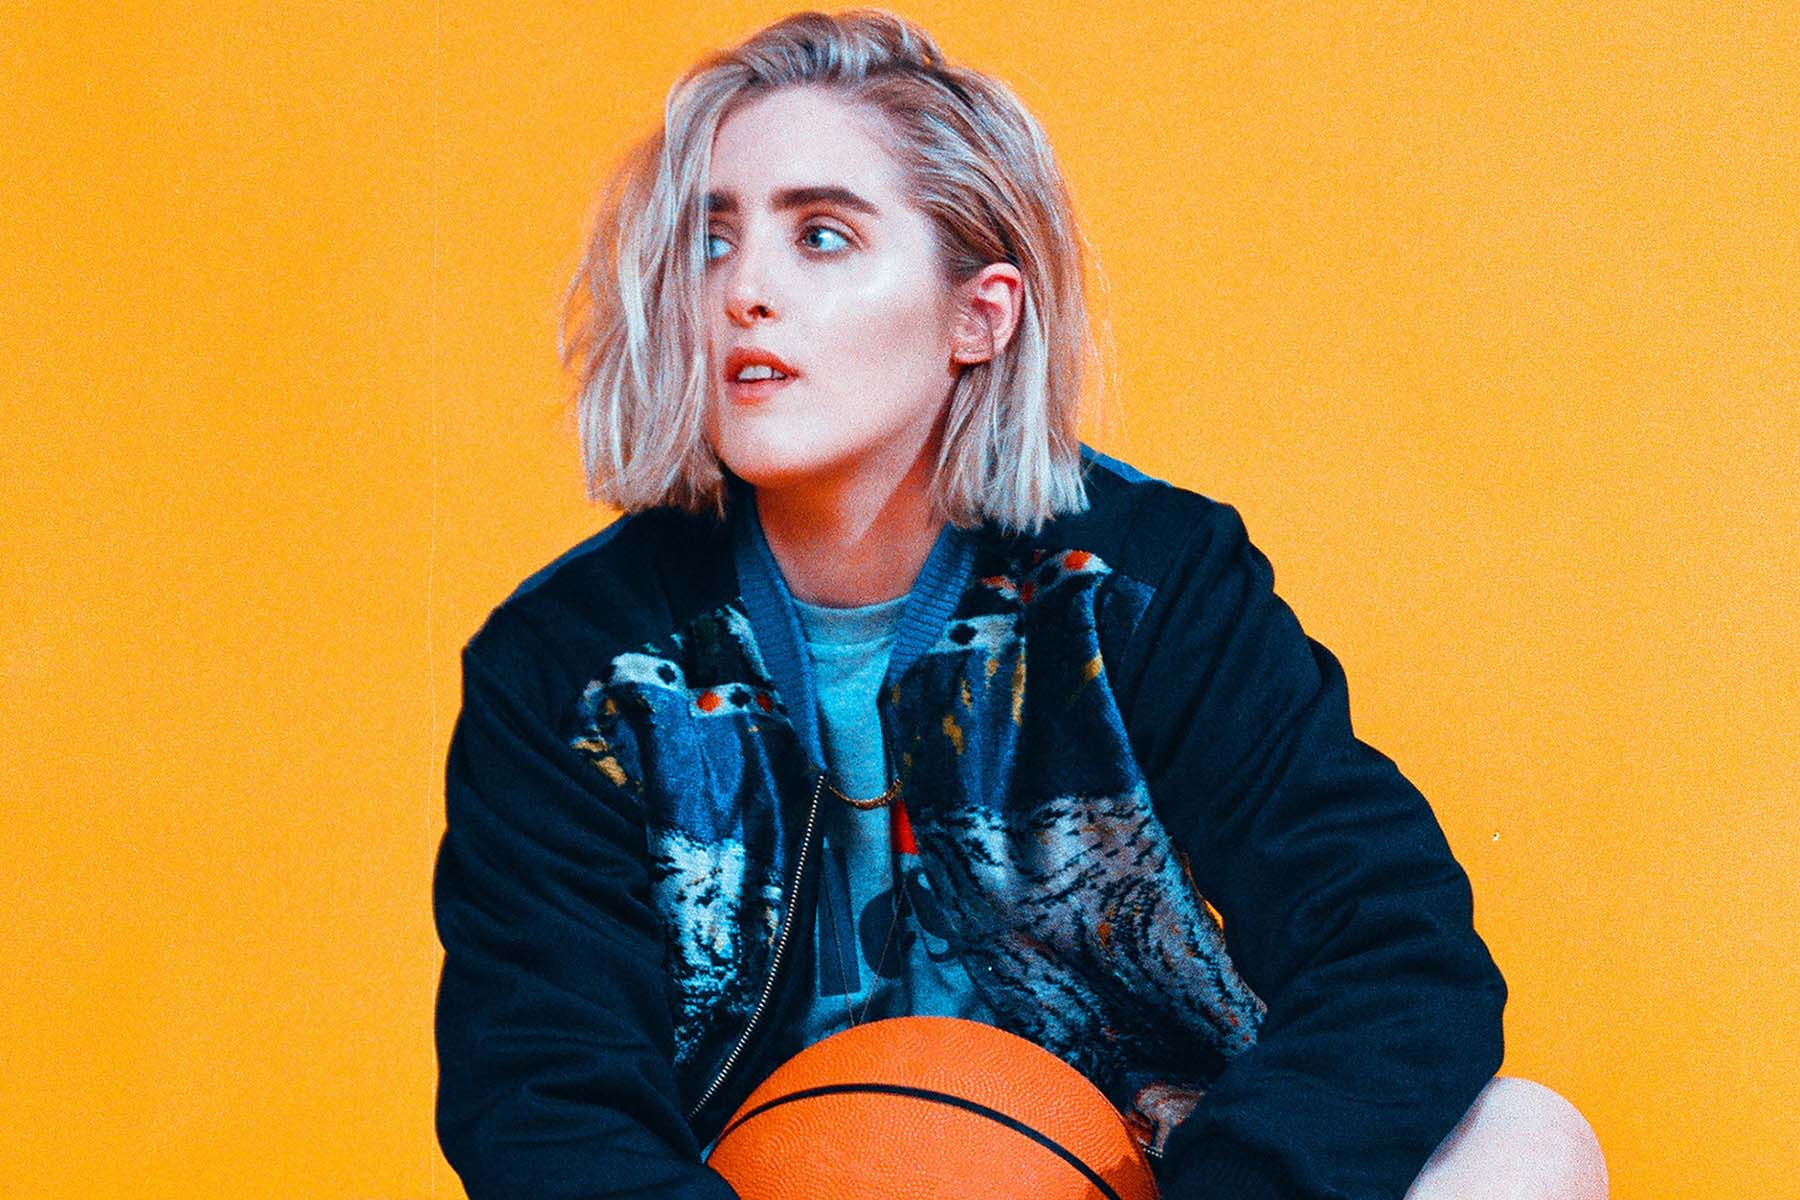 Shura - queer artists to check out in celebration of pride